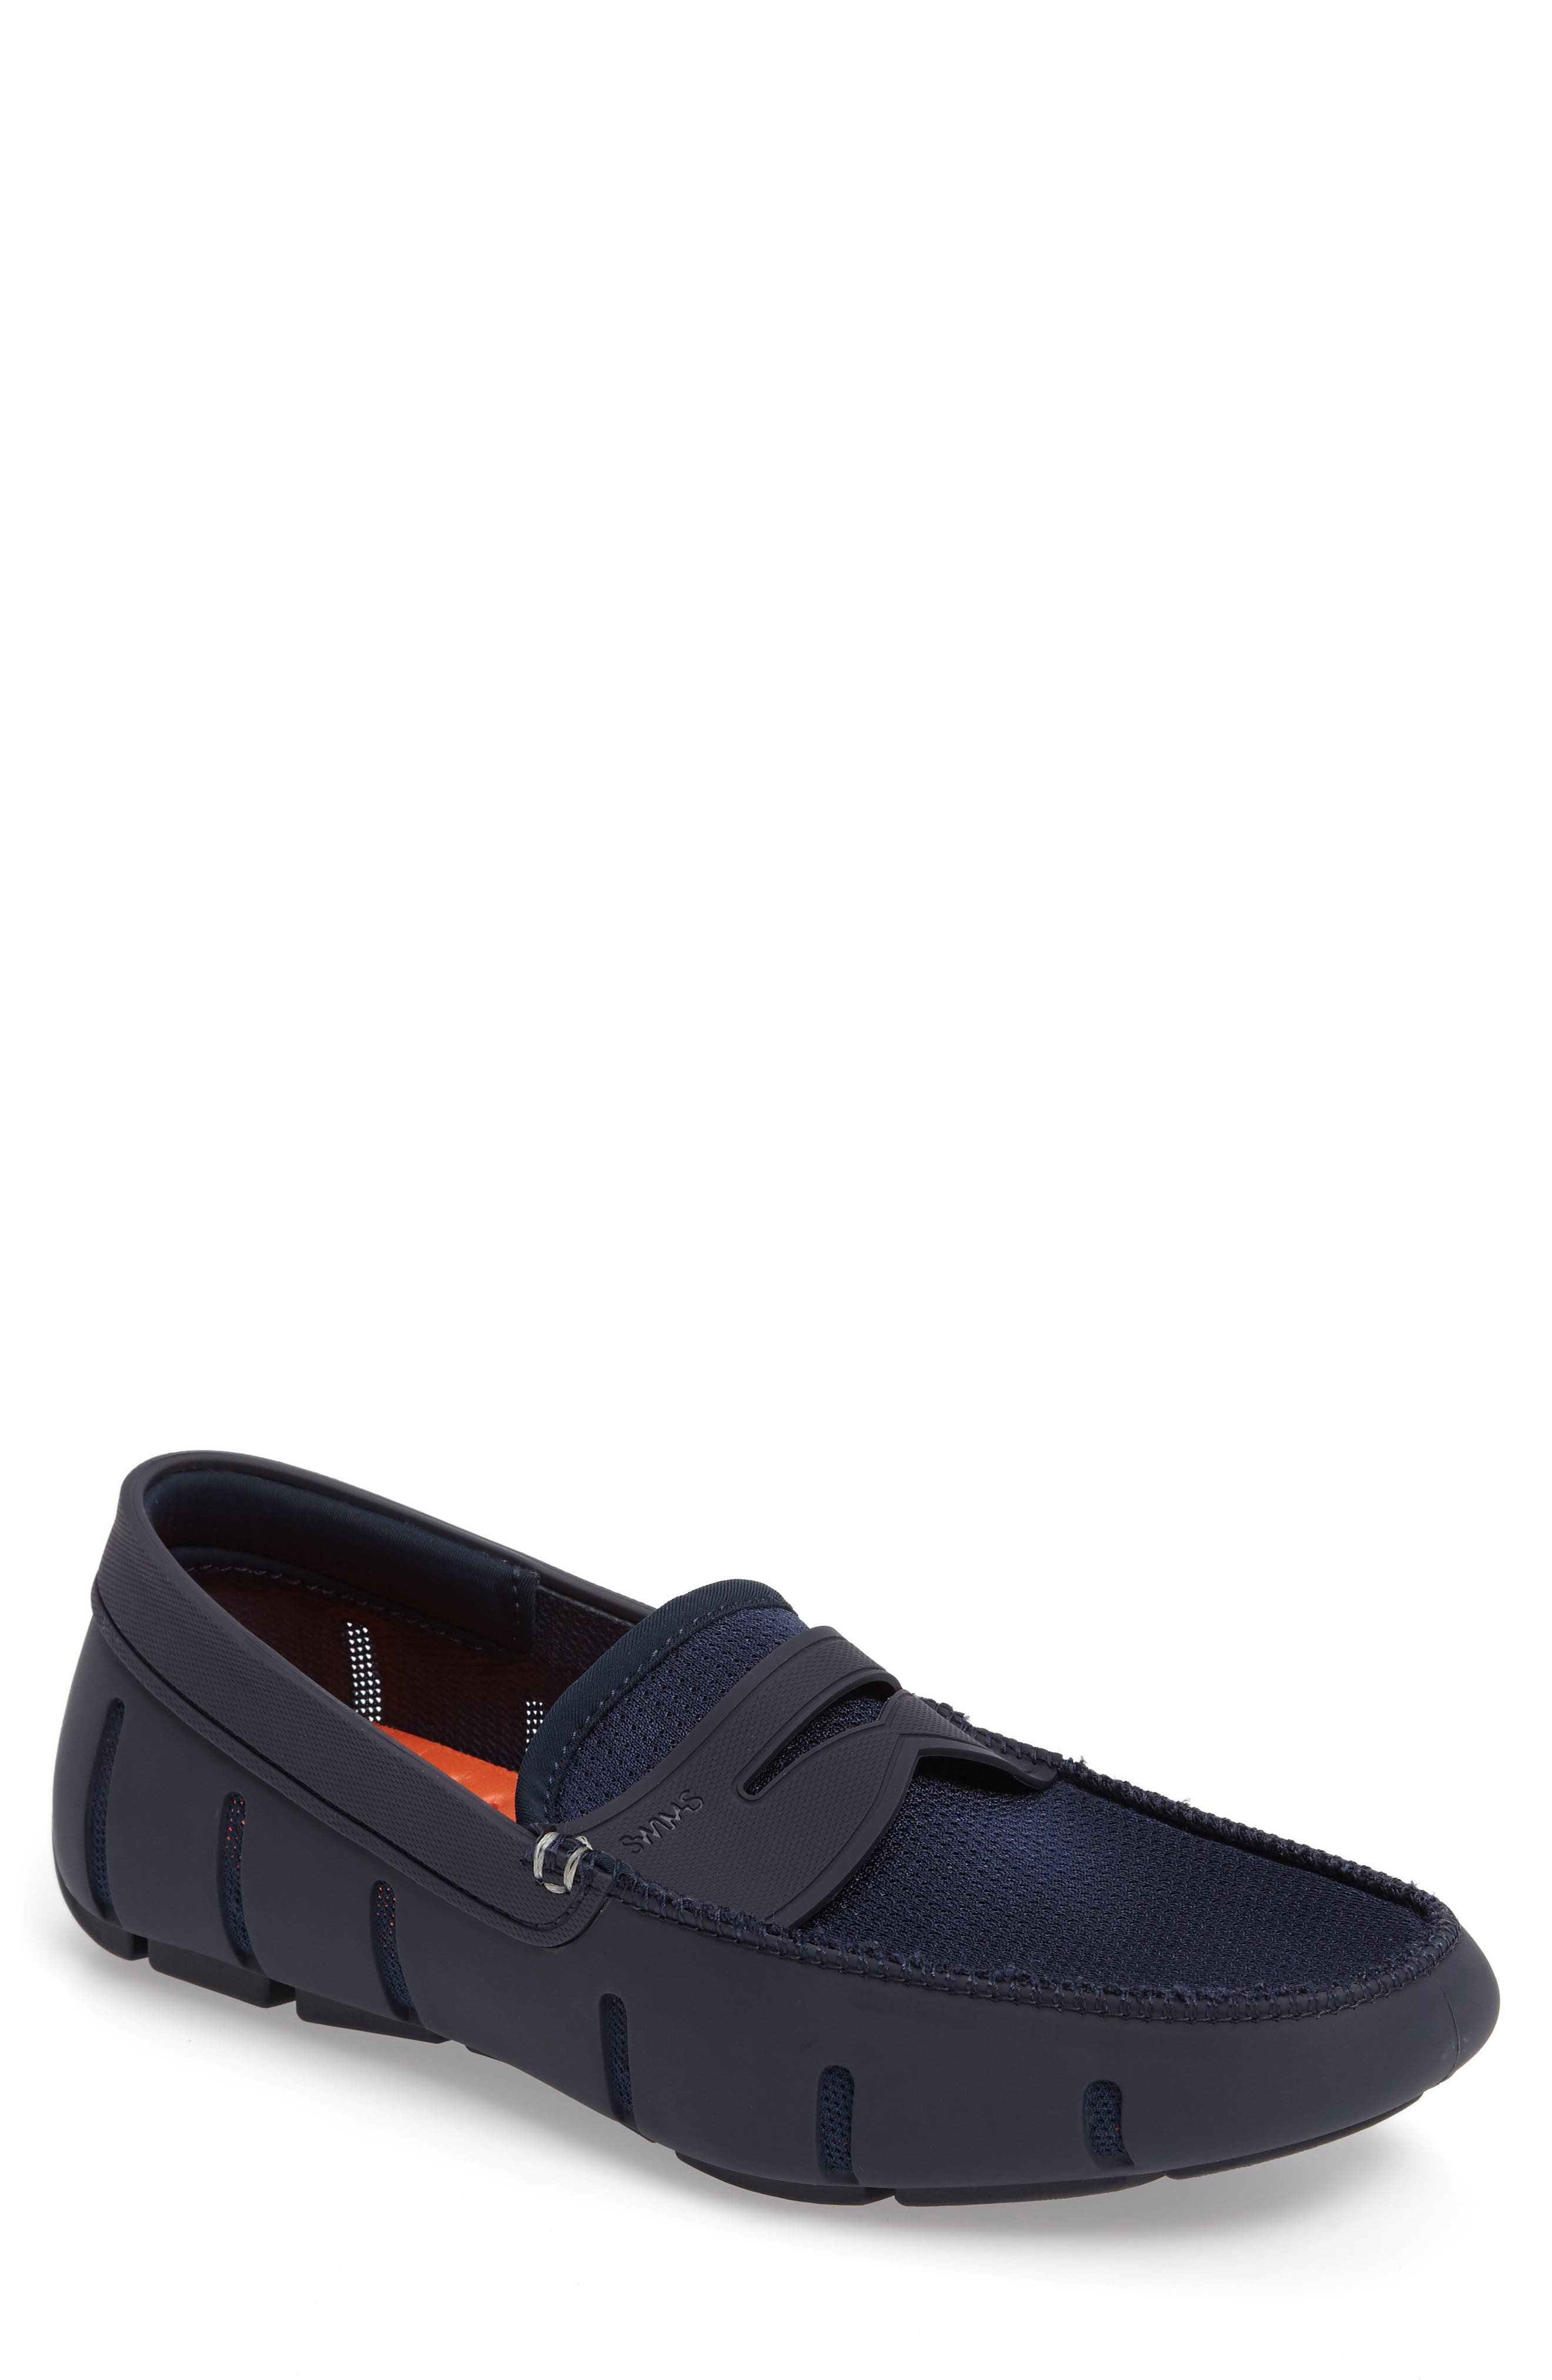 Mens Casual Shoes Latest Collections 41607765 Swims Mesh And Rubber Penny Loafers Light Blue Orange